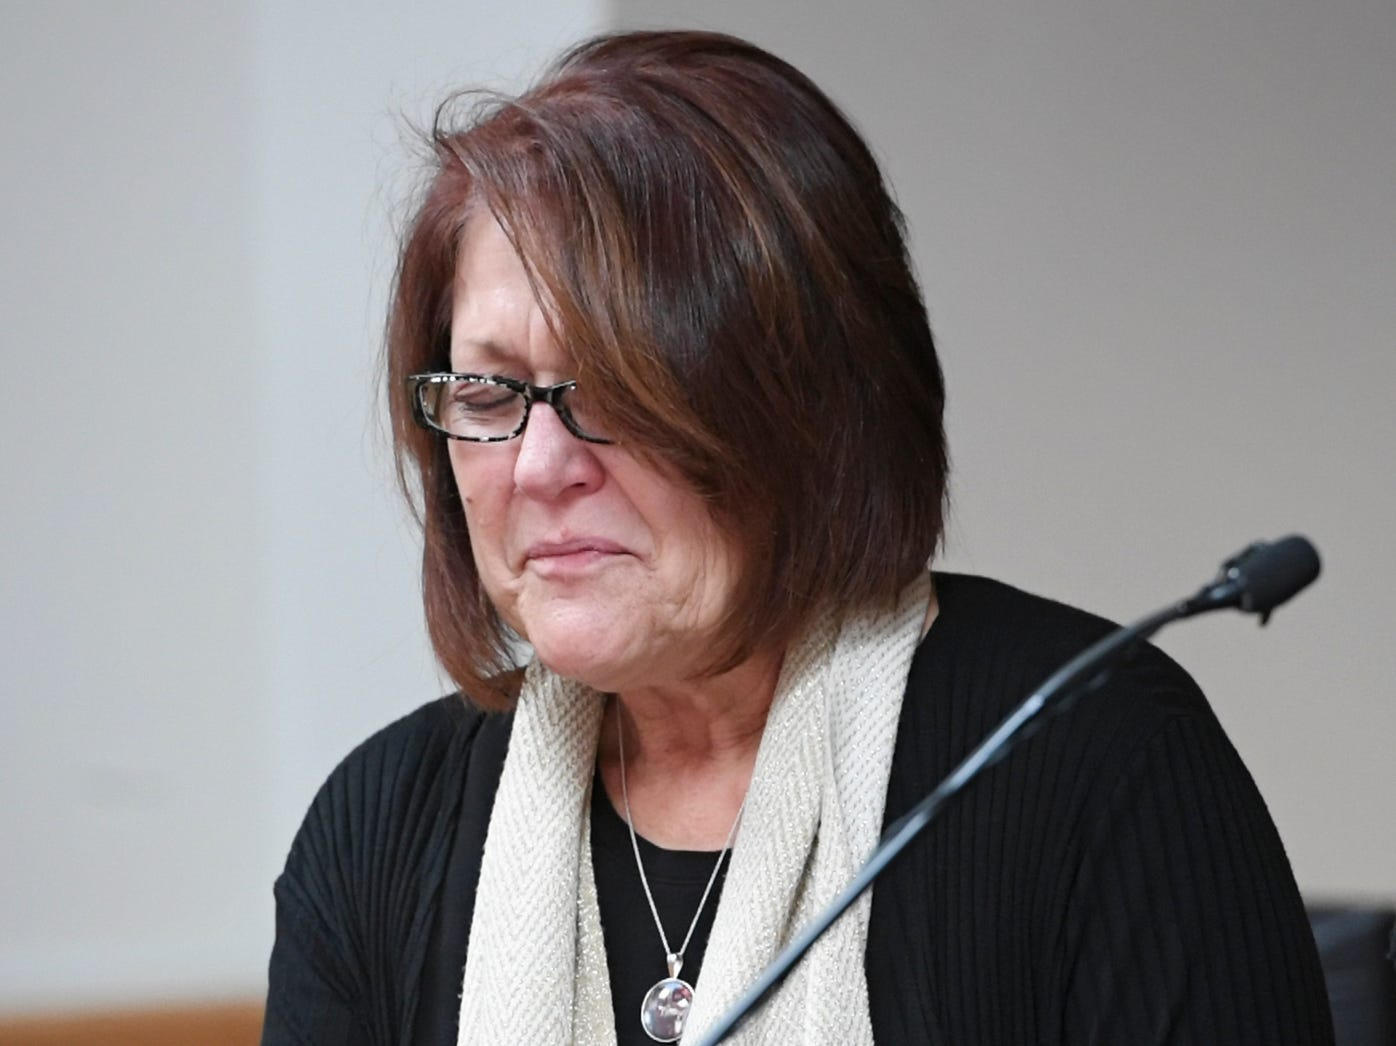 Cindy Watts gets emotional after addressing the court during her son's sentencing at the Weld County Courthouse on Monday, Nov. 19, 2018 in Greeley, Colo. Christopher Watts received three consecutive life sentences without a chance at parole on Monday, nearly two weeks after pleading guilty to avoid the death penalty. (RJ Sangosti/The Denver Post via AP, Pool)